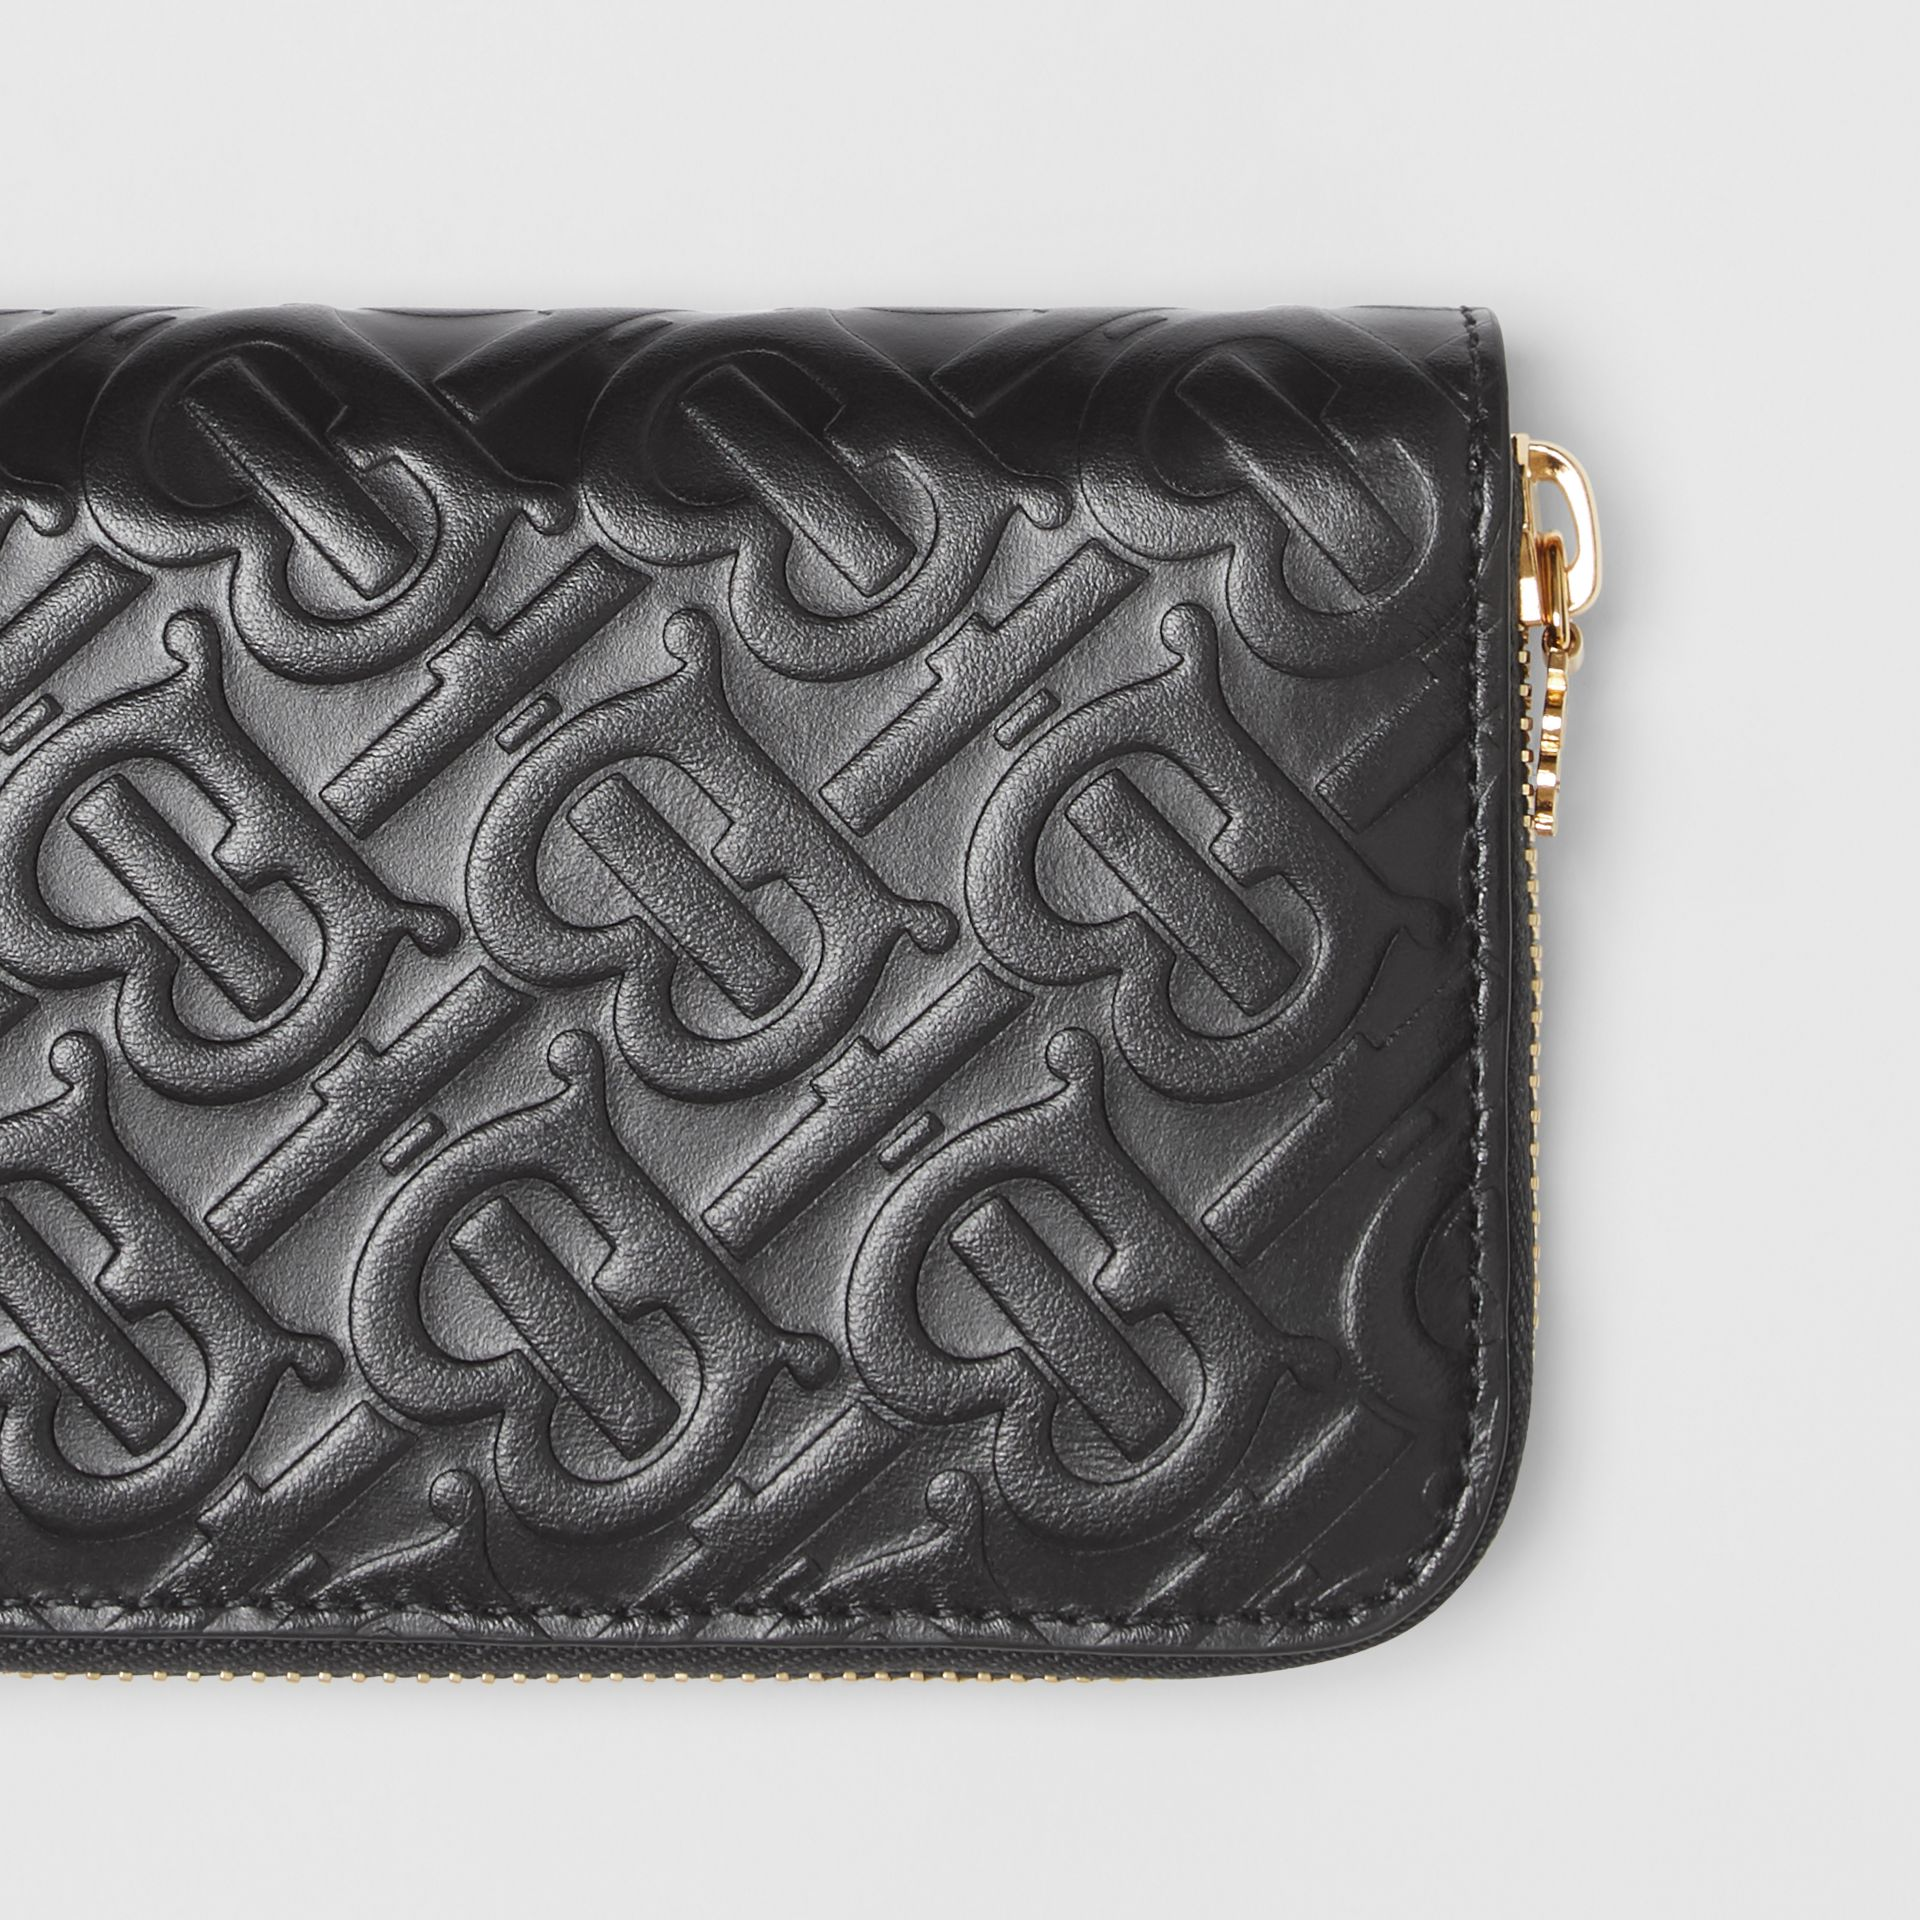 Monogram Leather Ziparound Wallet in Black - Women | Burberry Hong Kong - gallery image 1